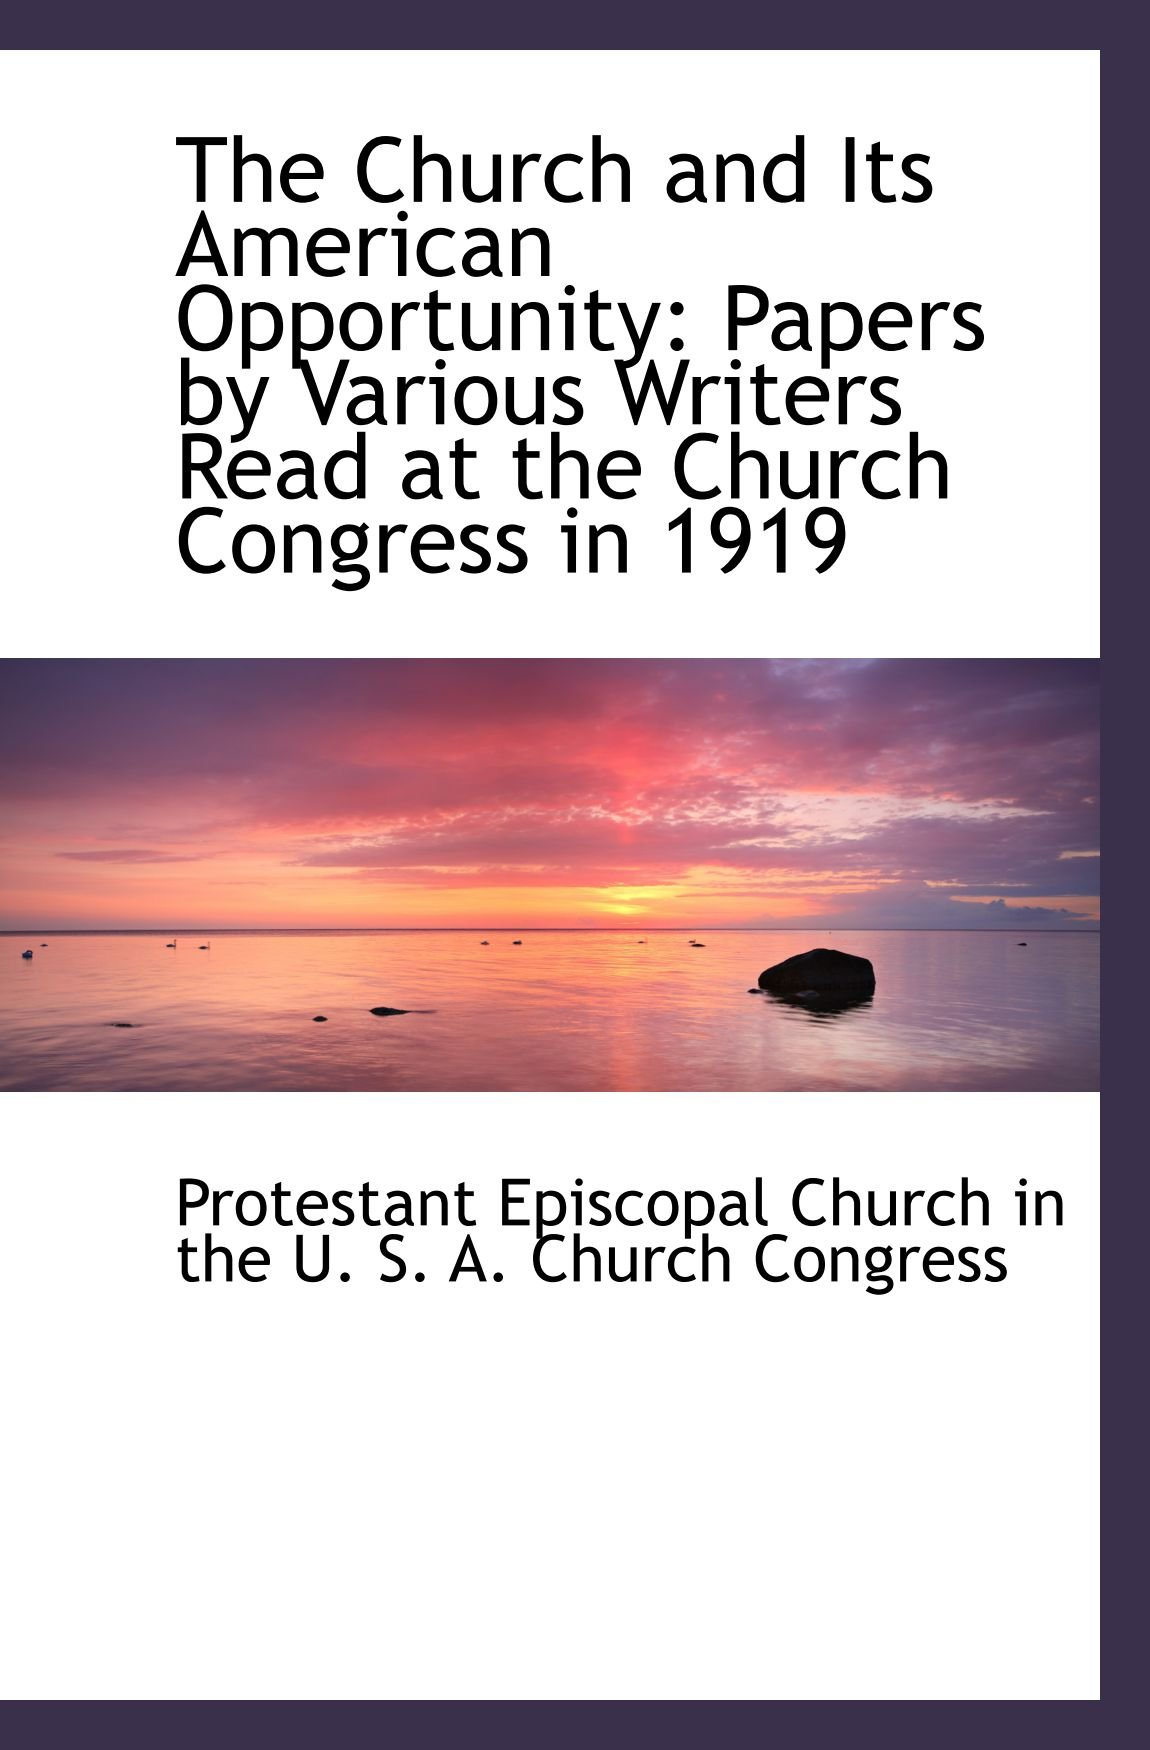 The Church and Its American Opportunity: Papers by Various Writers Read at the Church Congress in 19 ebook